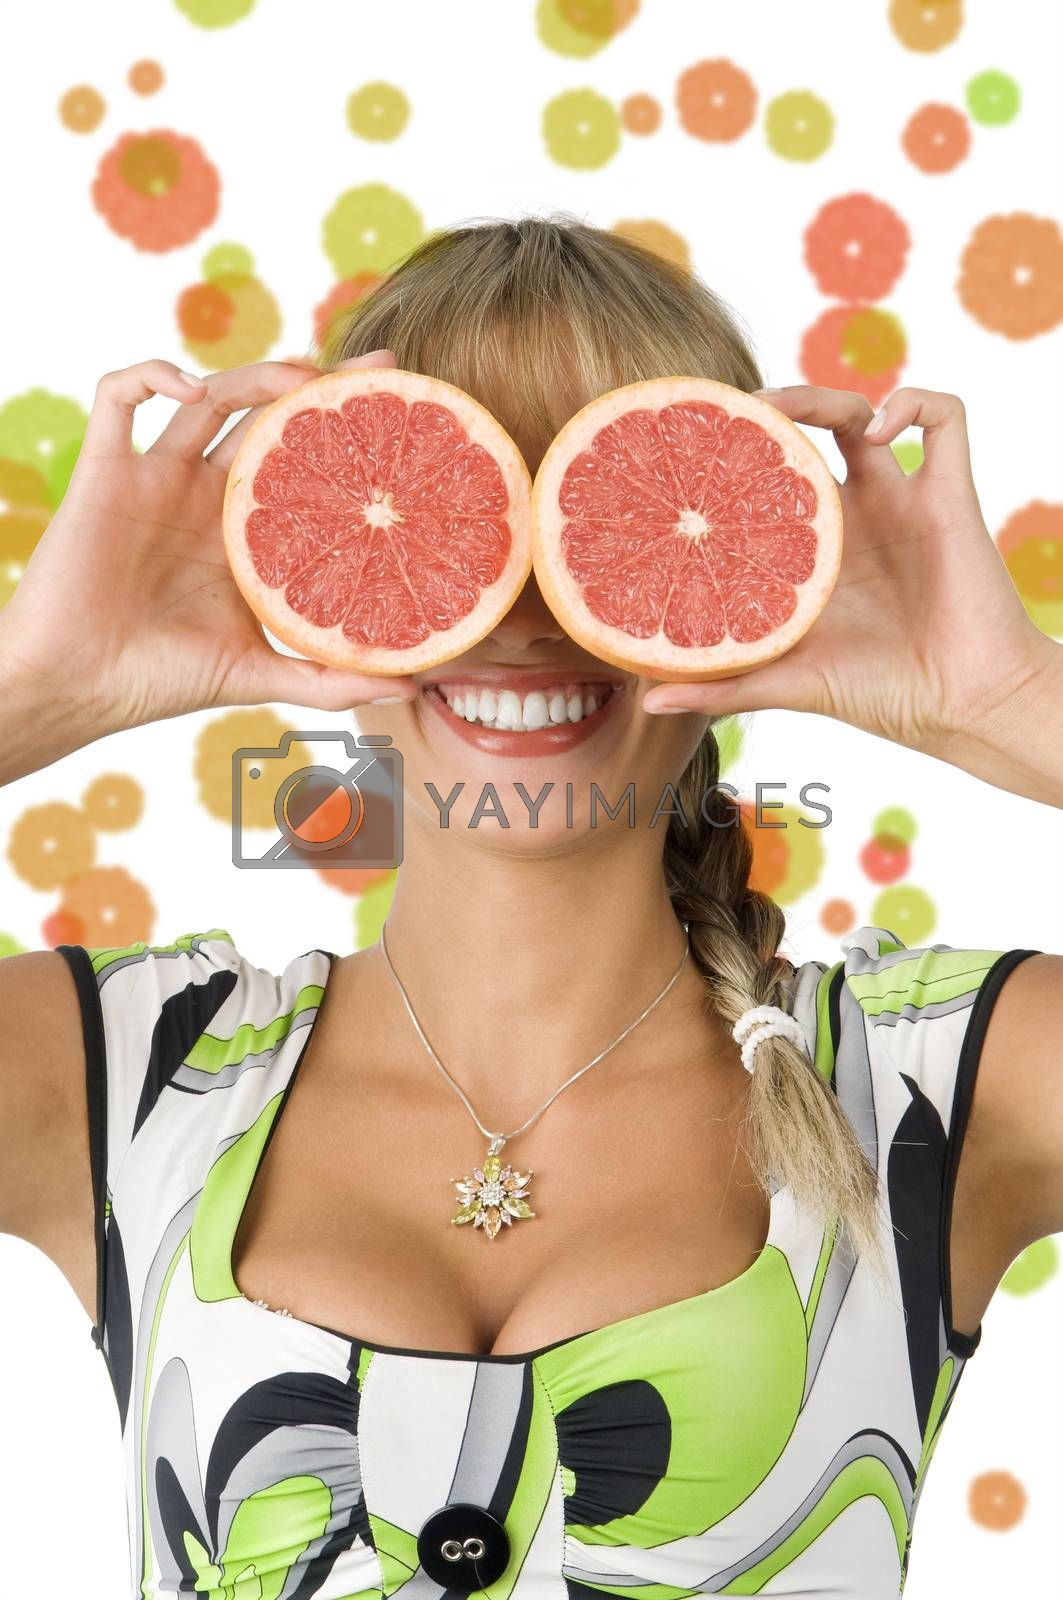 Royalty free image of grapefruit and glasses by fotoCD